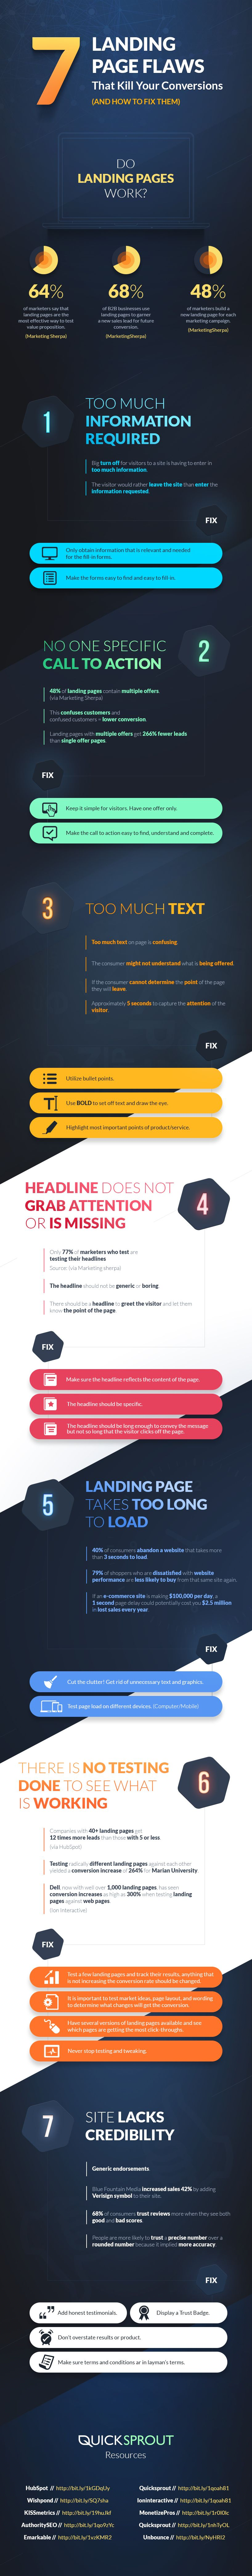 7 Landing Page Flaws that Kill Your Conversions (and How to Fix Them) [Infographic]